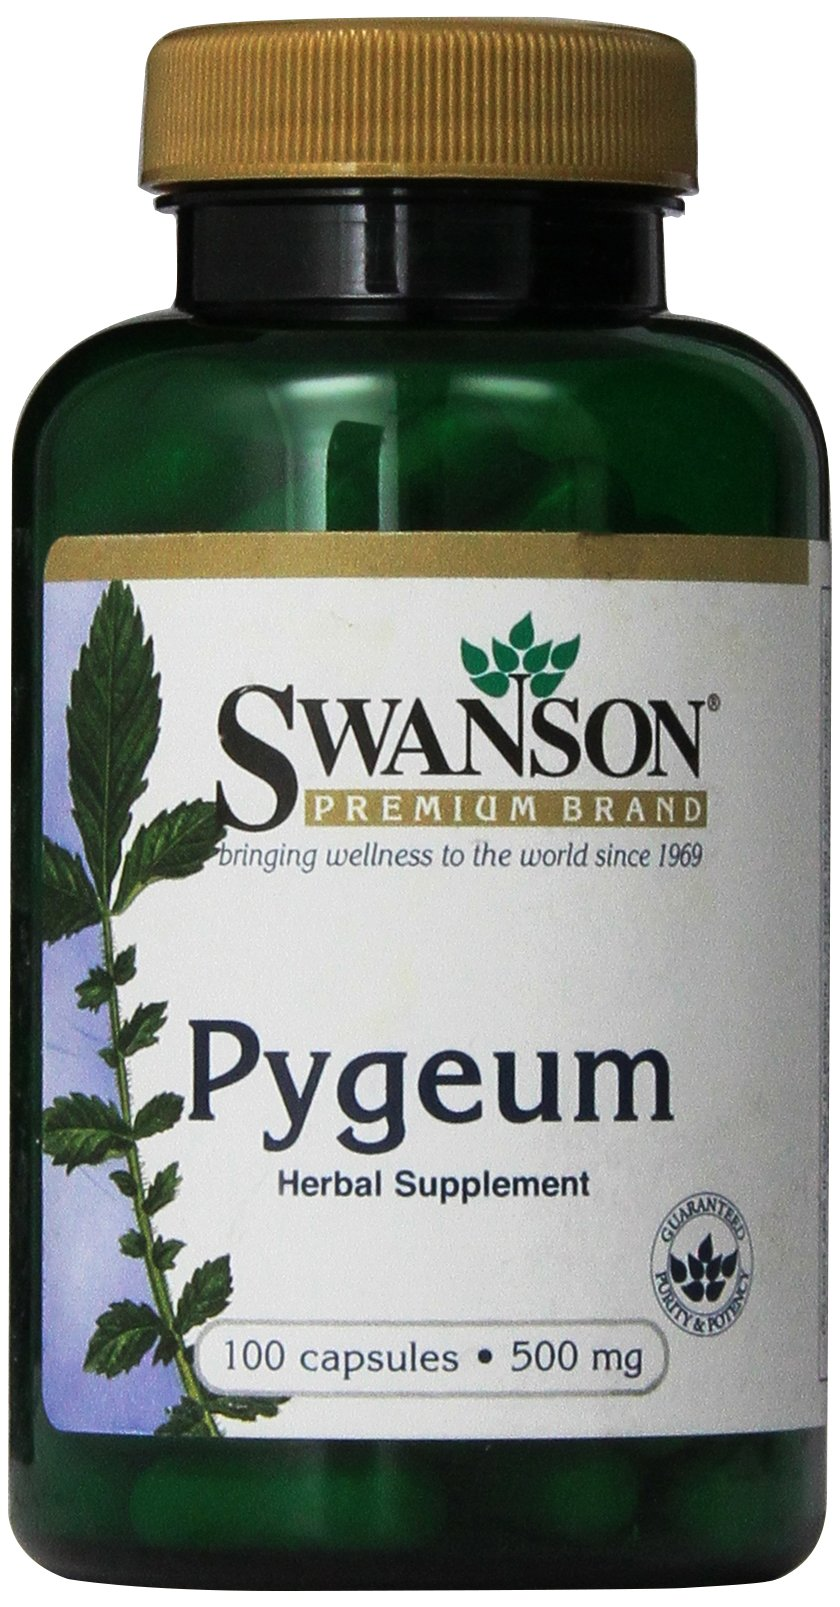 Swanson Pygeum 500 mg 100 Caps